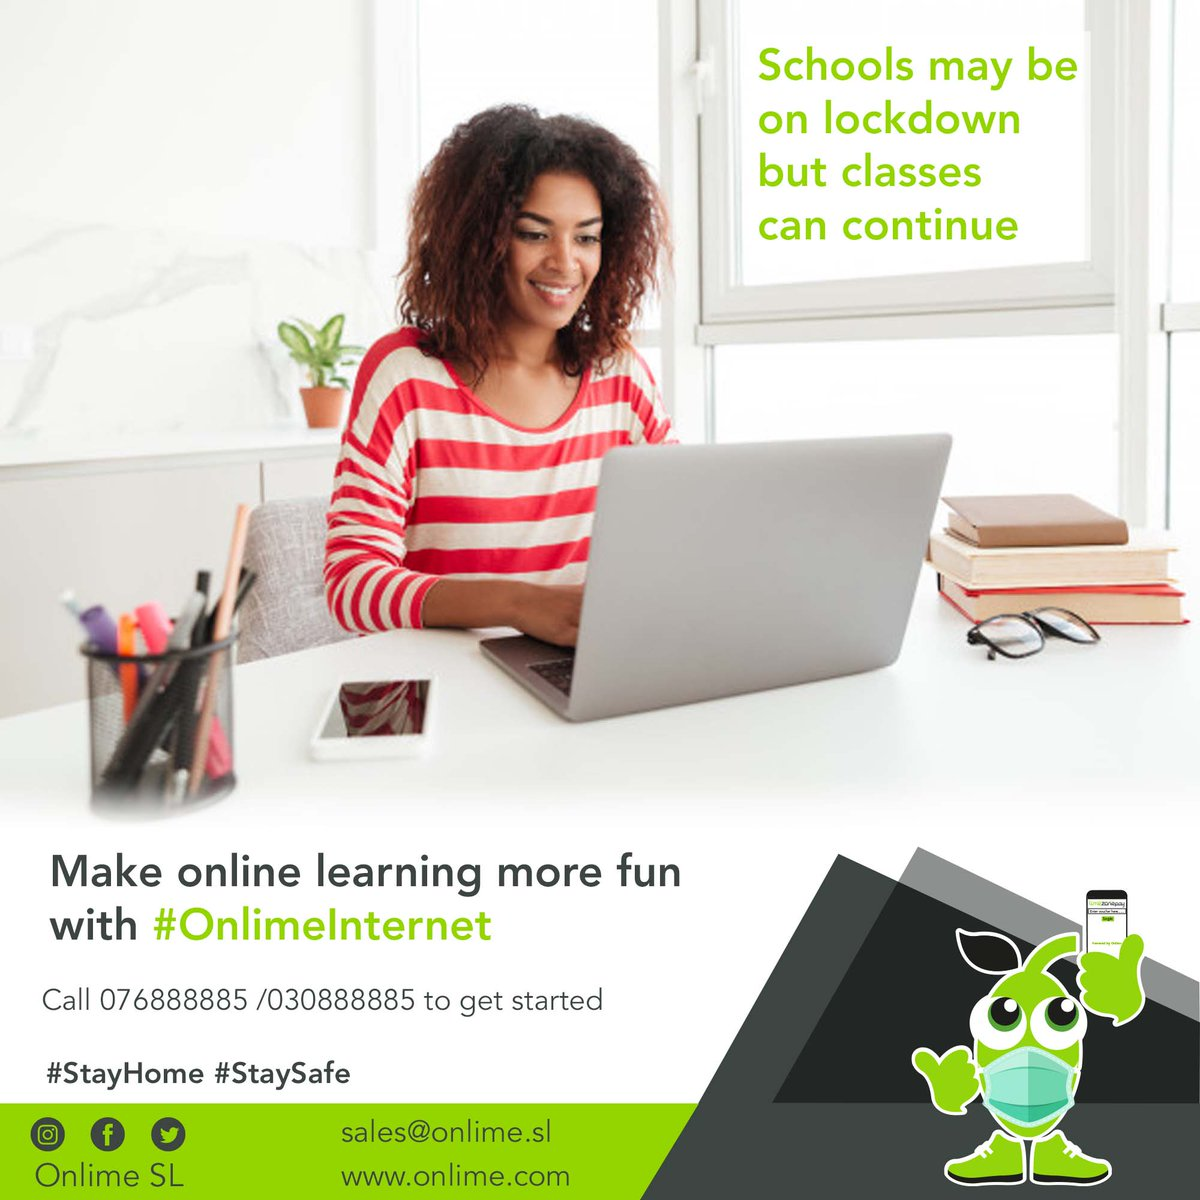 Make online learning more fun with #OnlimeInternet Call 076888885 /030888885 to get started. #SierraLeone #Freetown #Salone https://t.co/7OiUxIJPtE